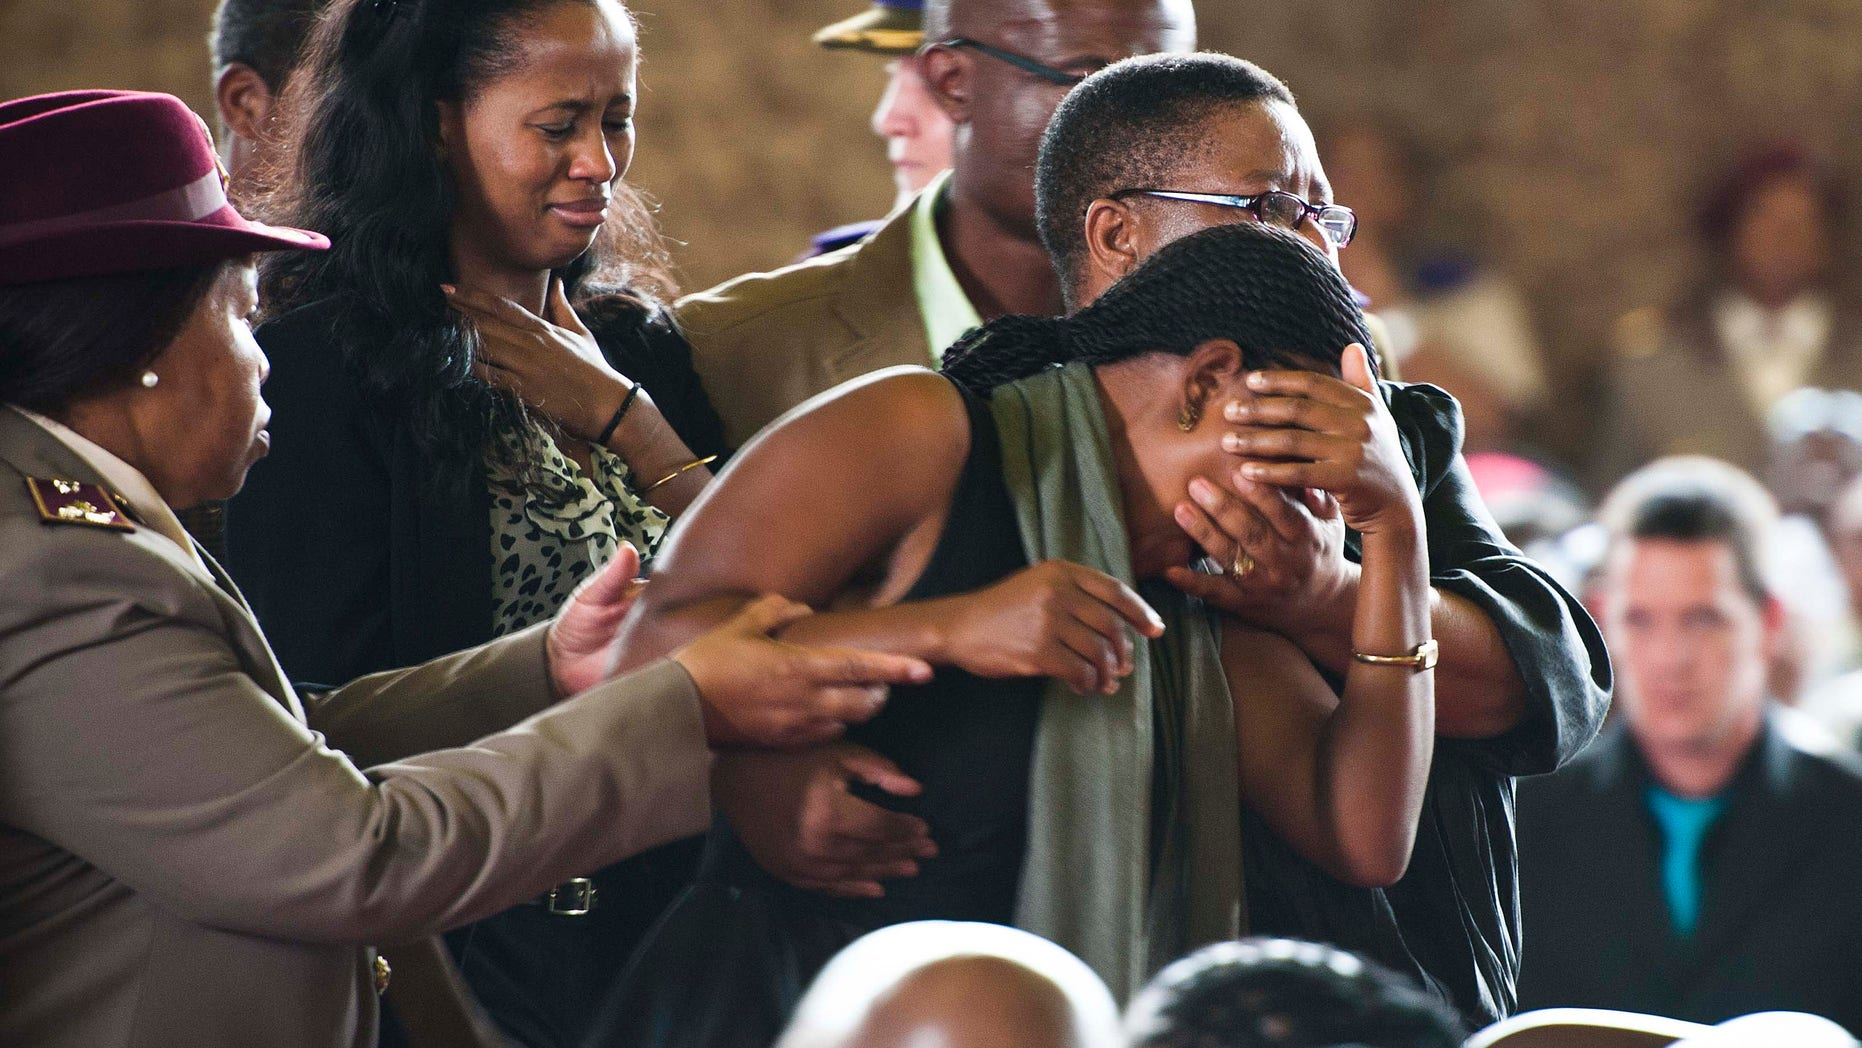 A mourner breaks down during a memorial service for 13 South African soldiers killed in Central African Republic last week, at an air force base in Pretoria, South Africa, Tuesday, April 2, 2013. The service took place amid strident debate about why the troops were deployed  and accusations that they were sent to protect business interests of a company allied to the ruling African National Congress , charges which president Jacob Zuma denied. (AP Photo)